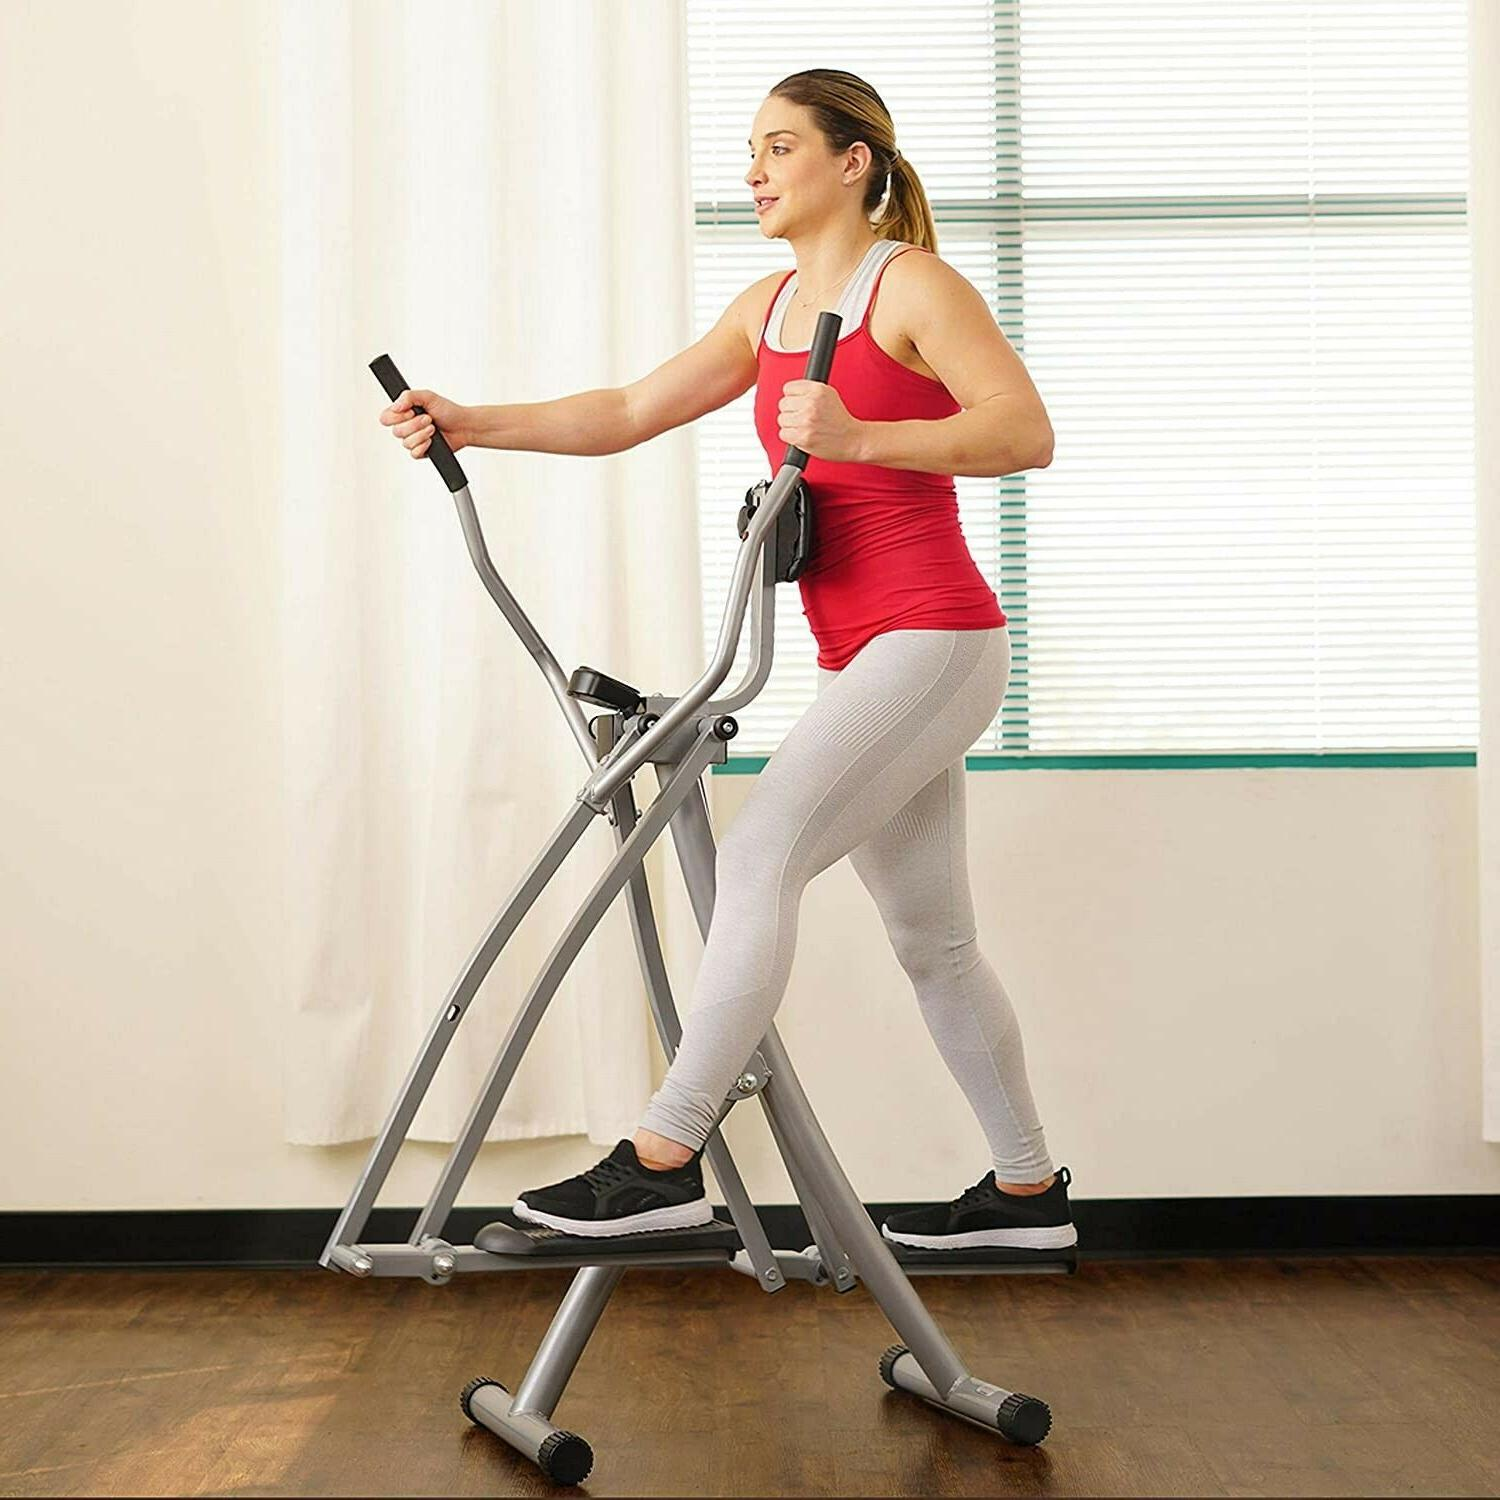 Air Walk Trainer Elliptical Machine w/LCD apx 7